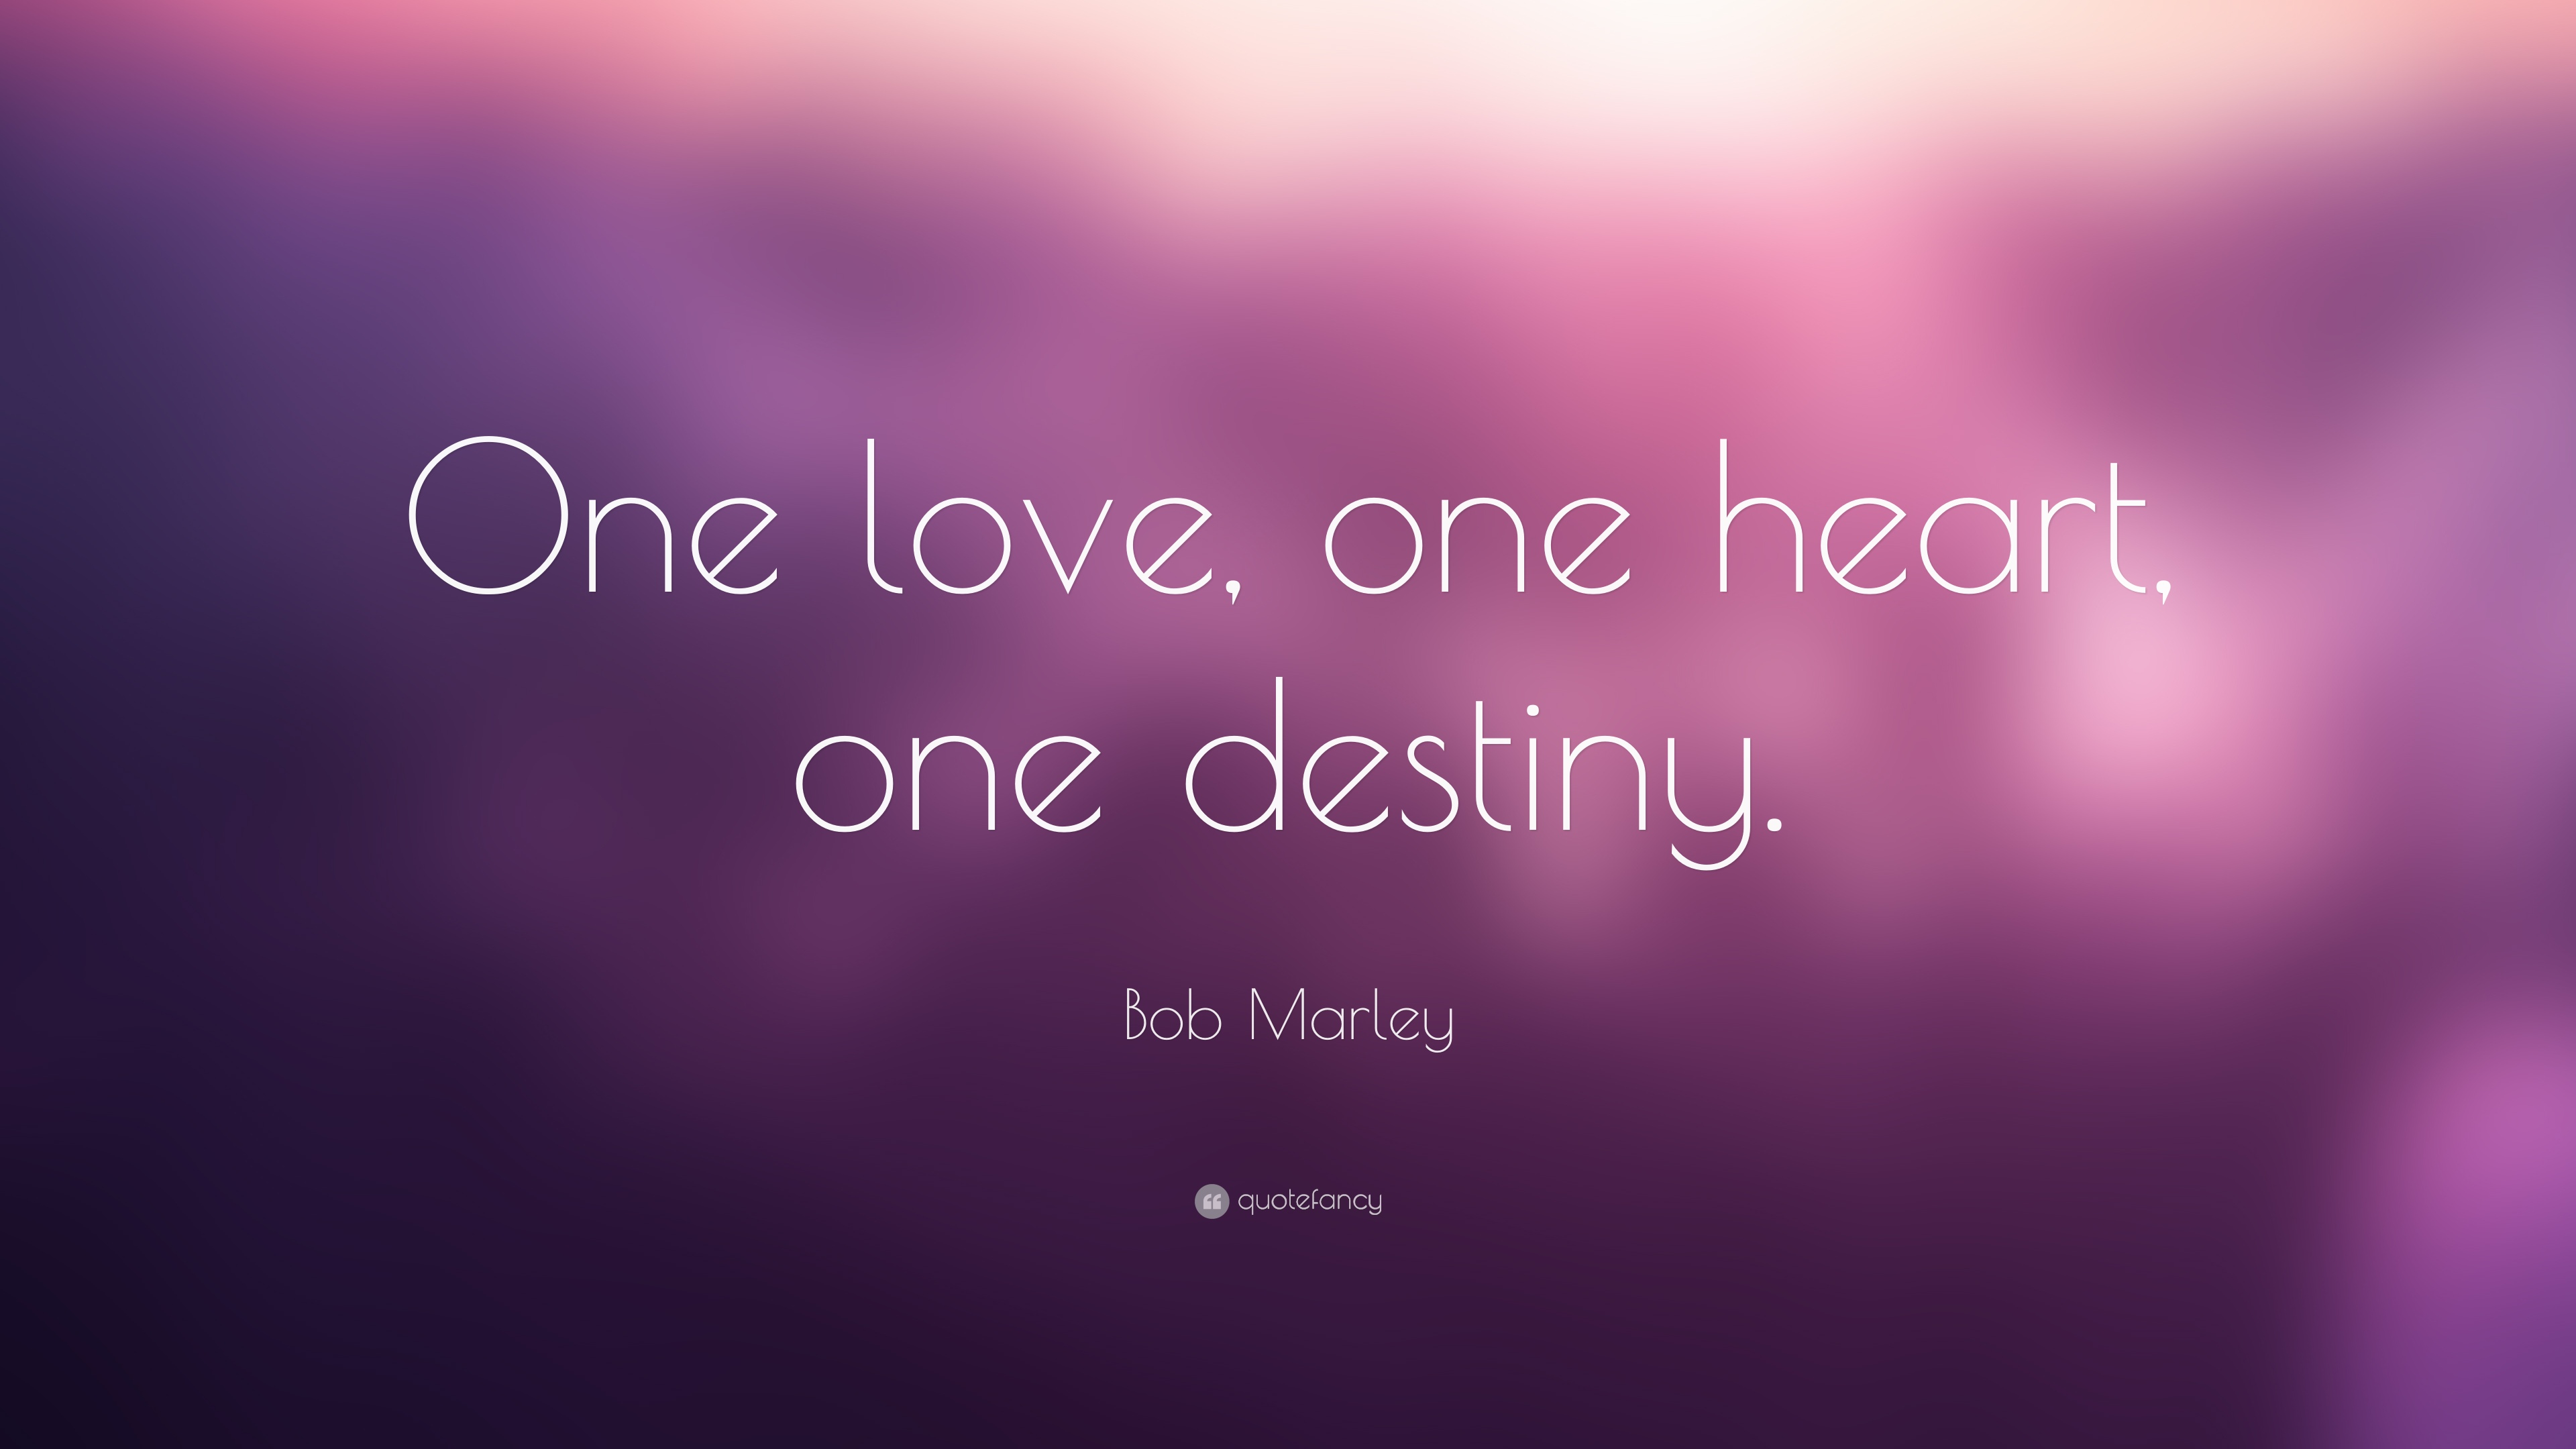 Love Quotes: ?One love, one heart, one destiny.? Bob Marley